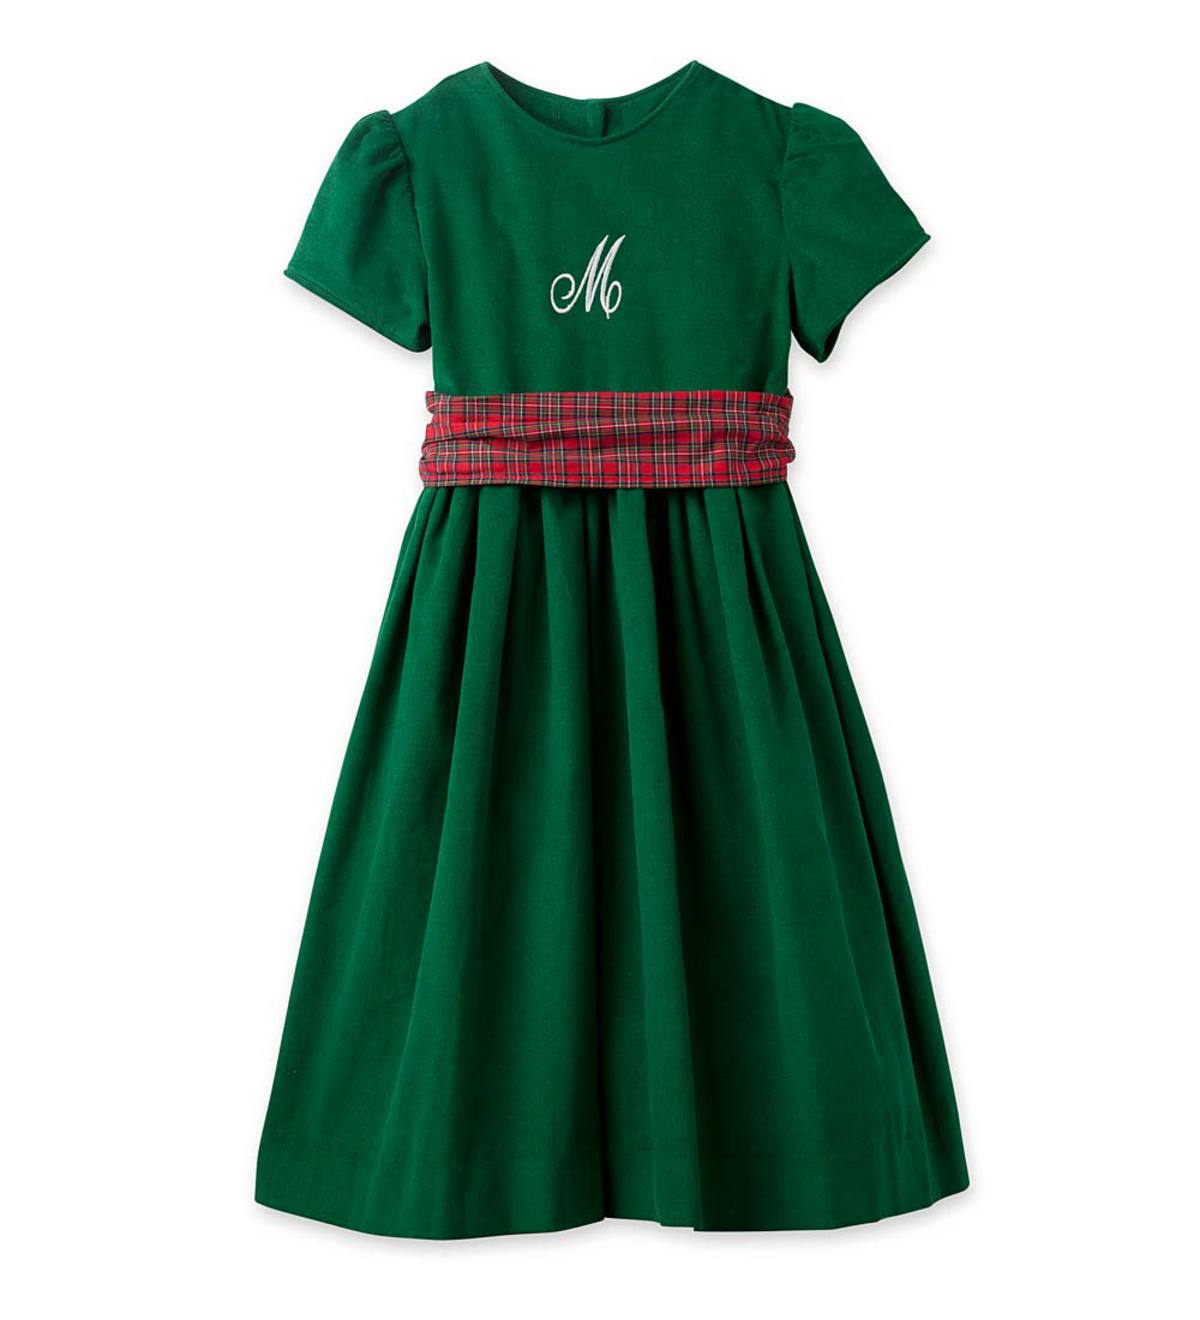 Personalized Corduroy Dress - Green - 2T